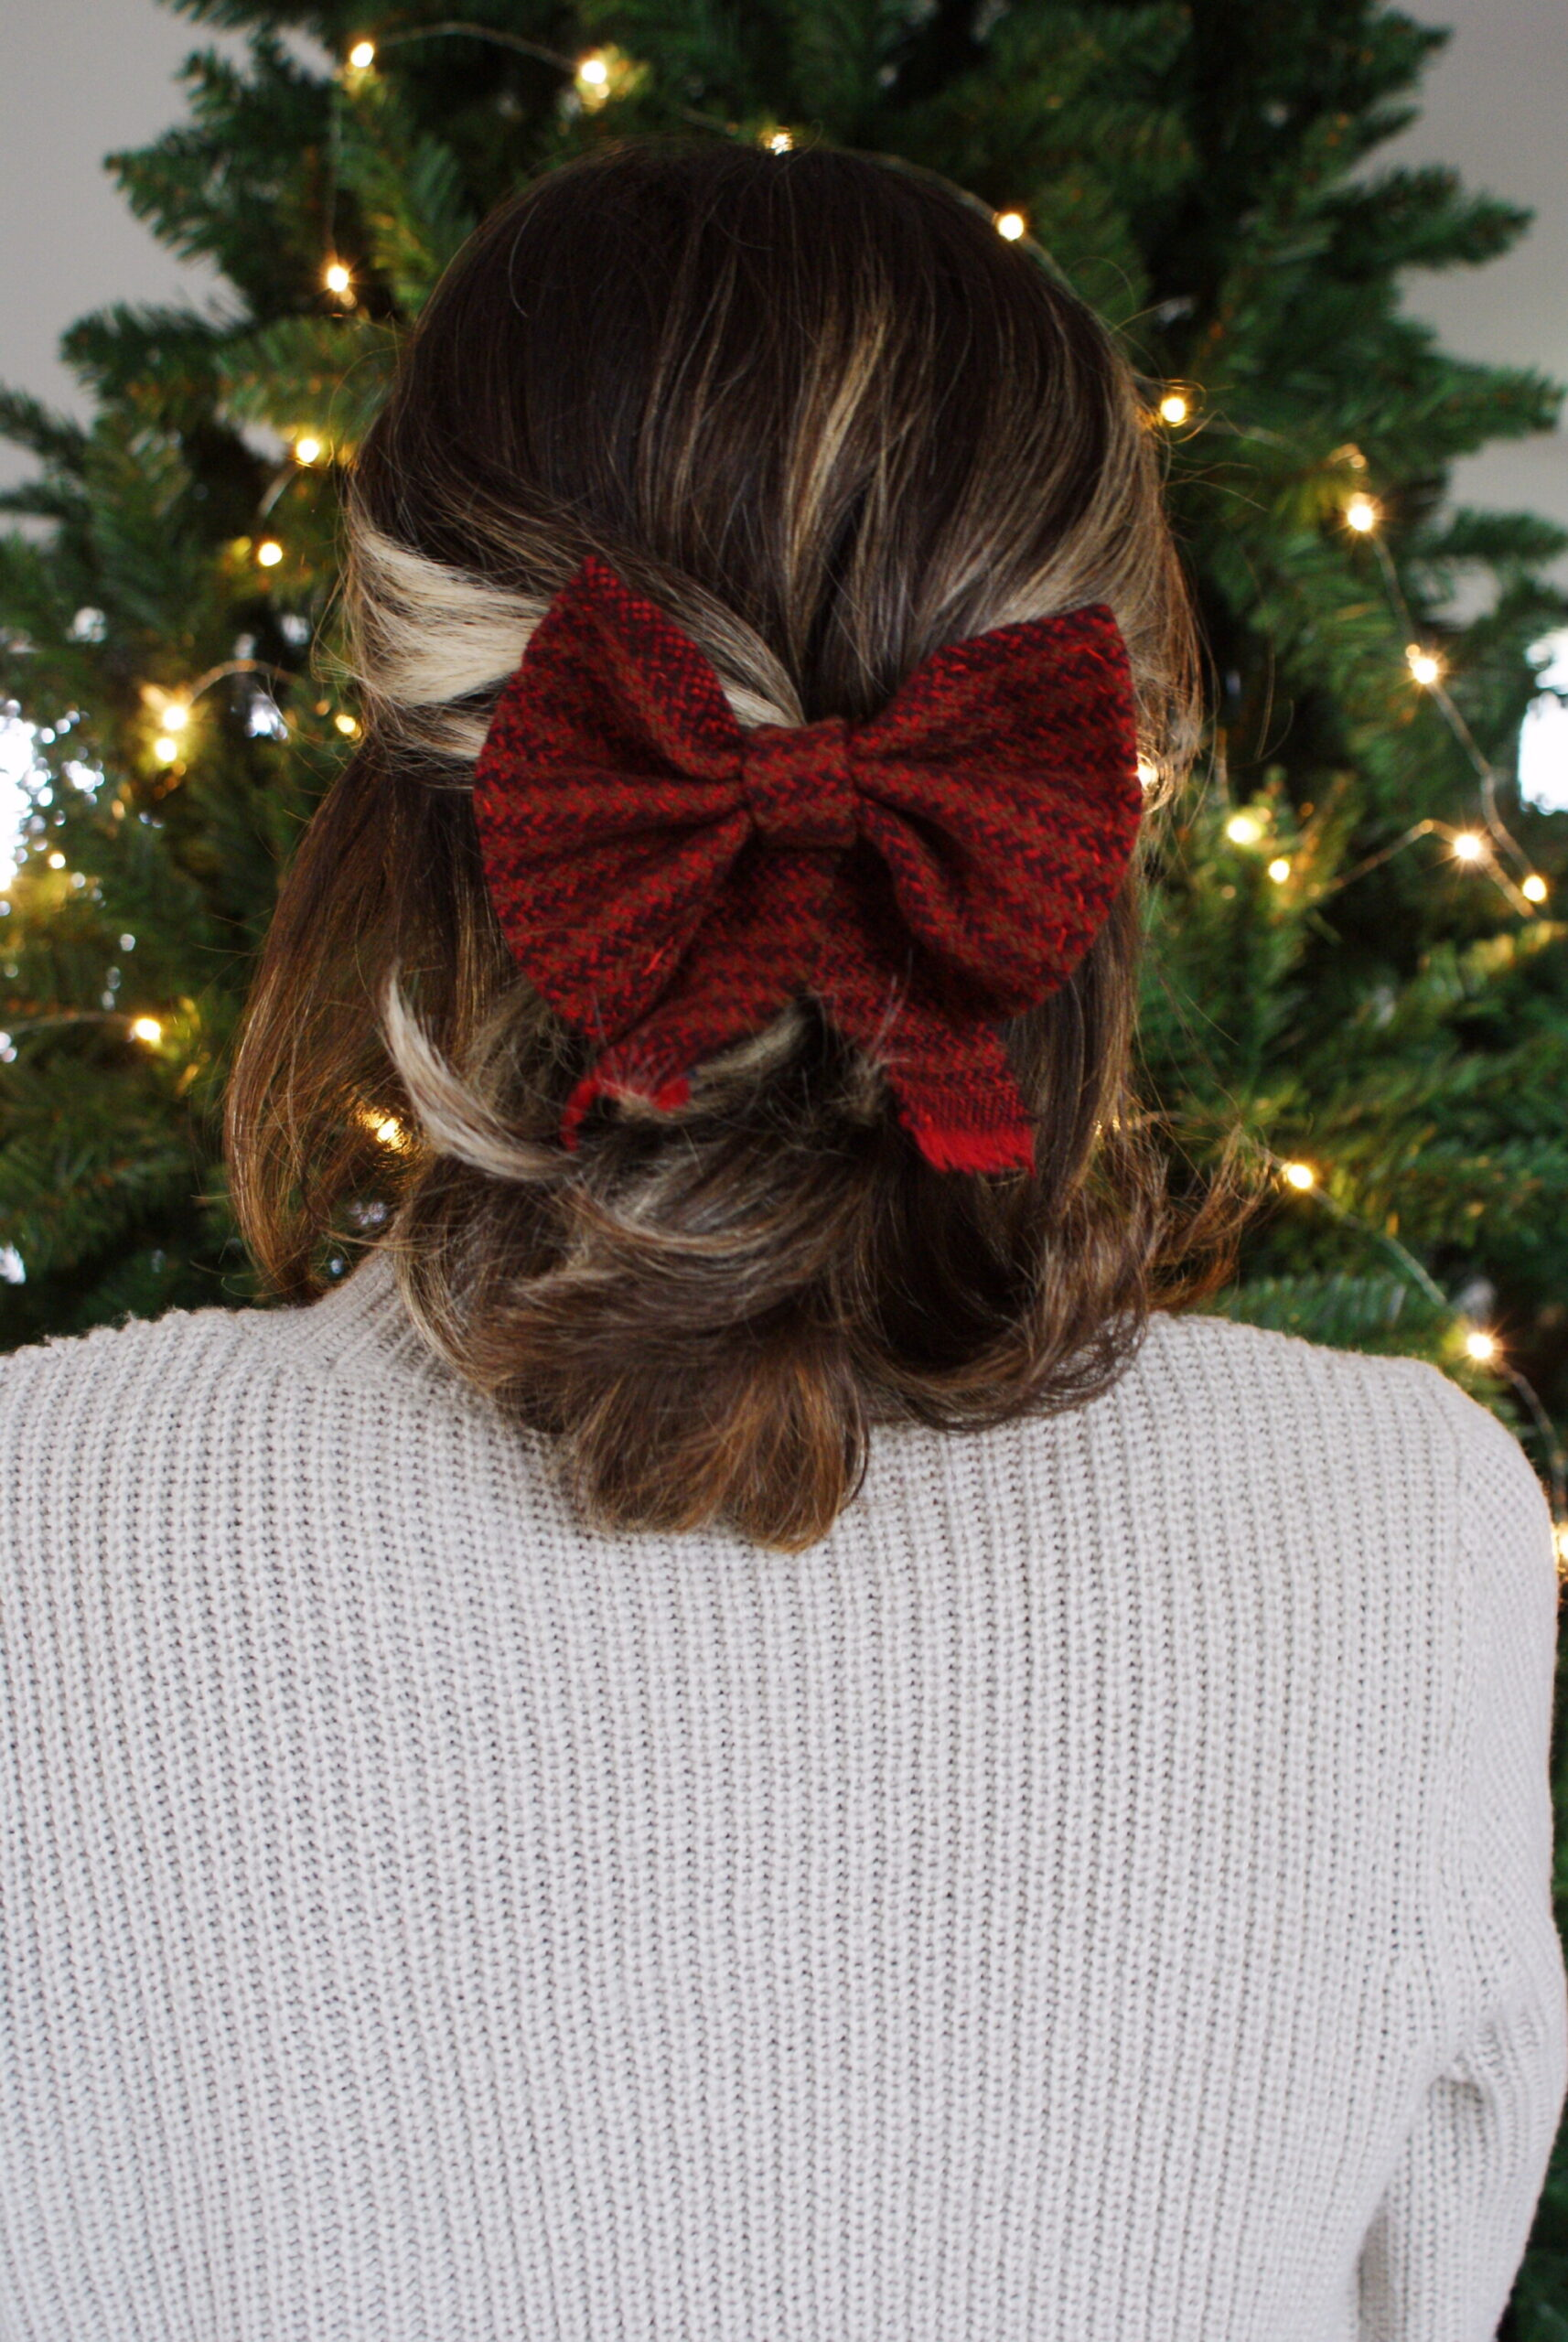 diy tartan bow hair clip easy handmade accessory festive outfits christmas tutorial wool